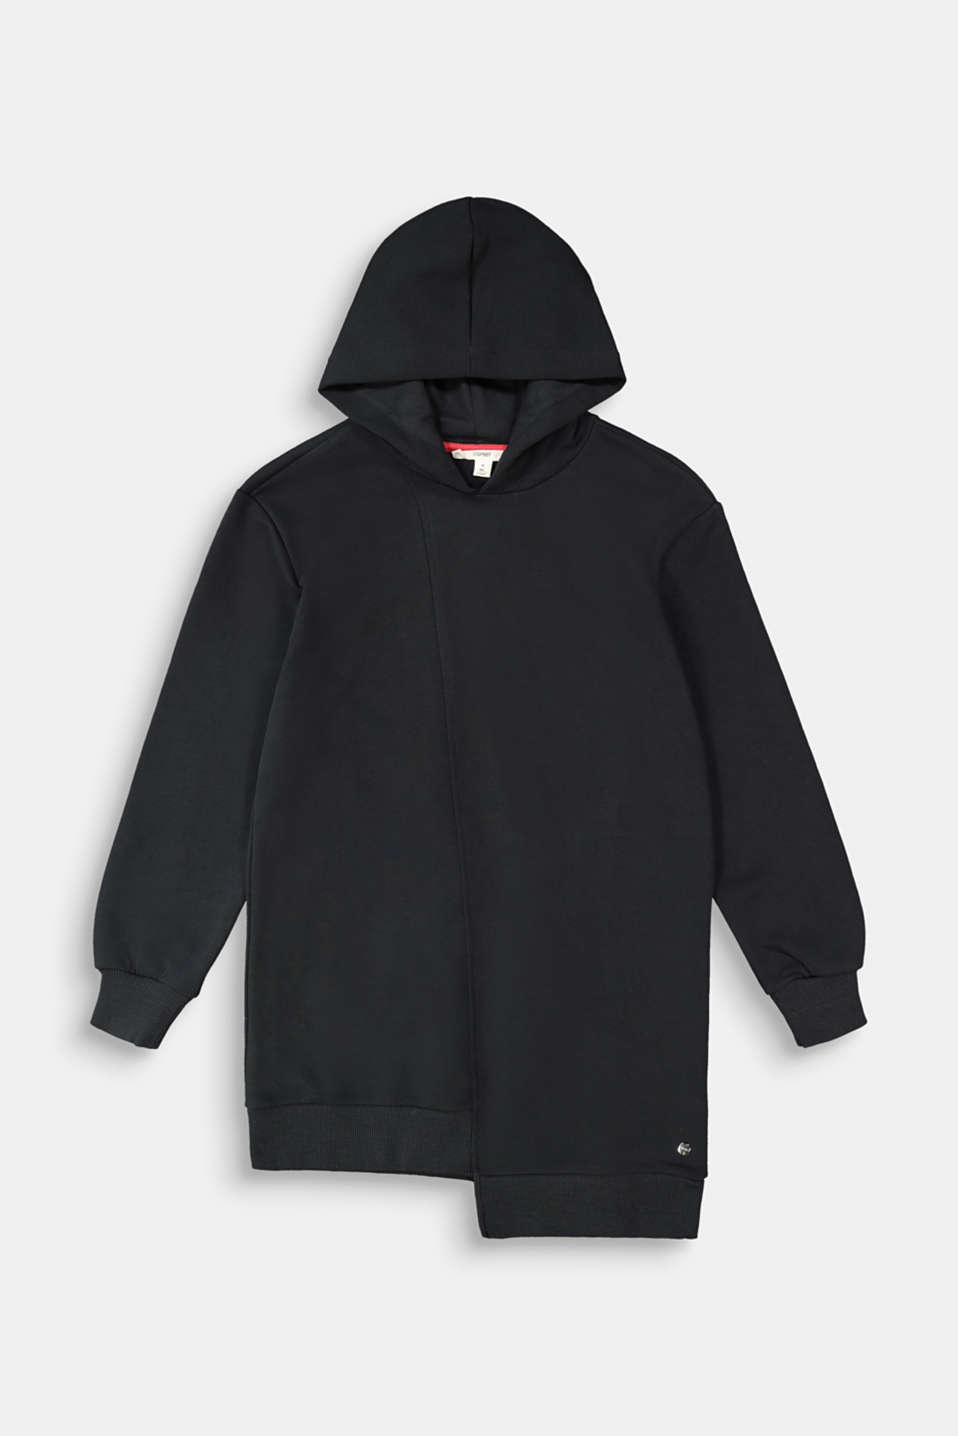 Esprit - Long hooded sweatshirt with appliqué detail